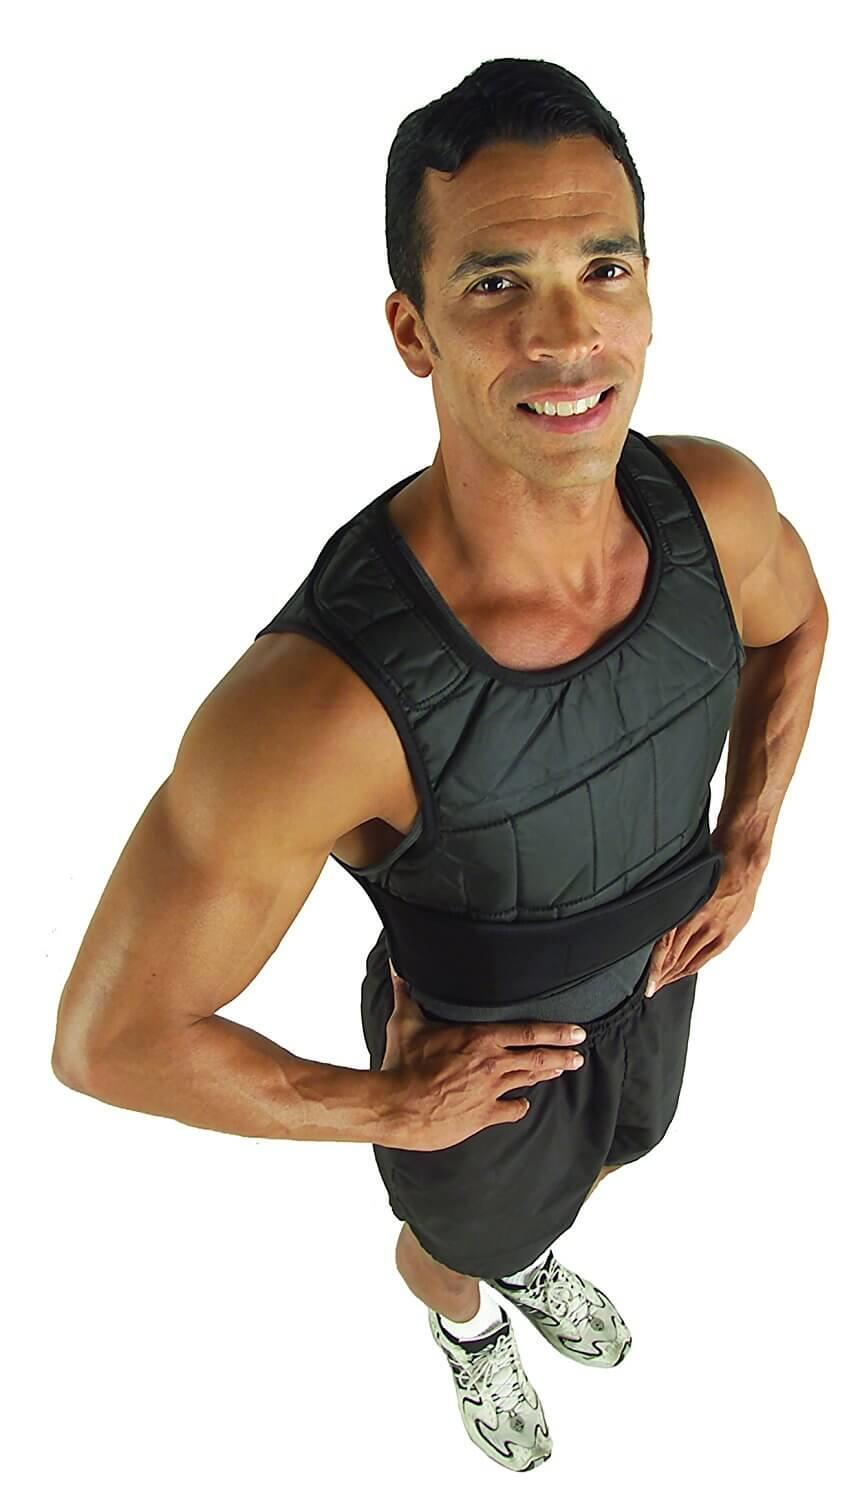 ZffXH Padded Adjustable Weighted Vest Training Jogging Fitness Workouts Weight Vest for Running